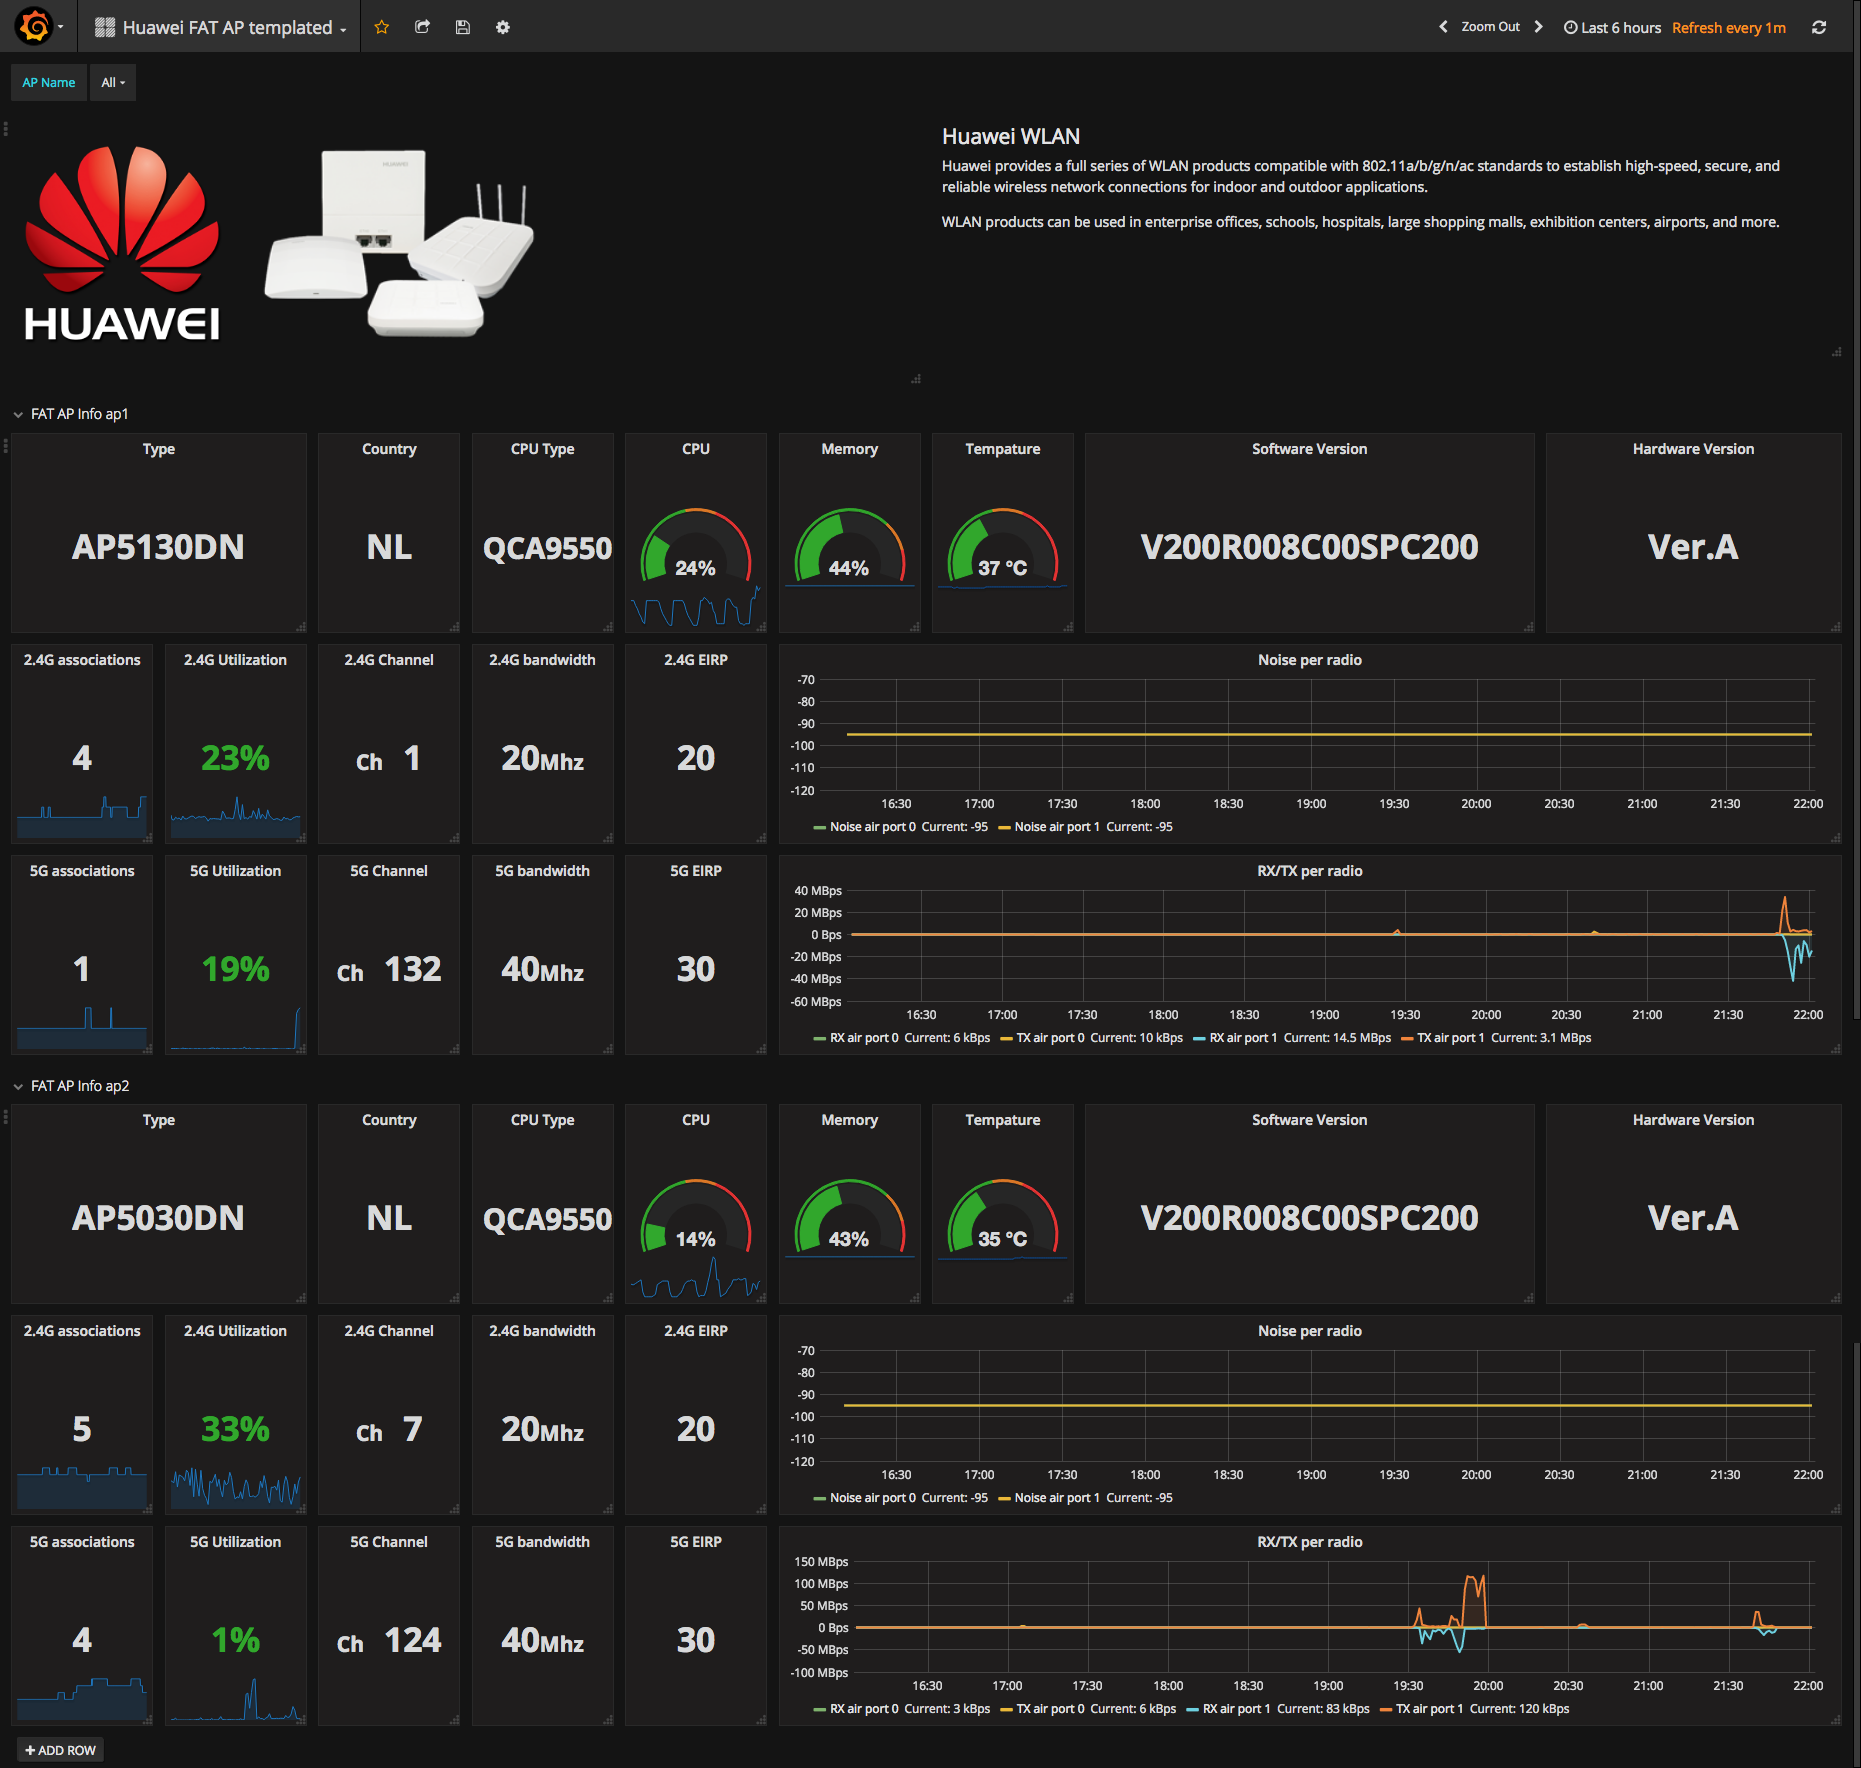 Grafana screenshot Huawe FAT AP